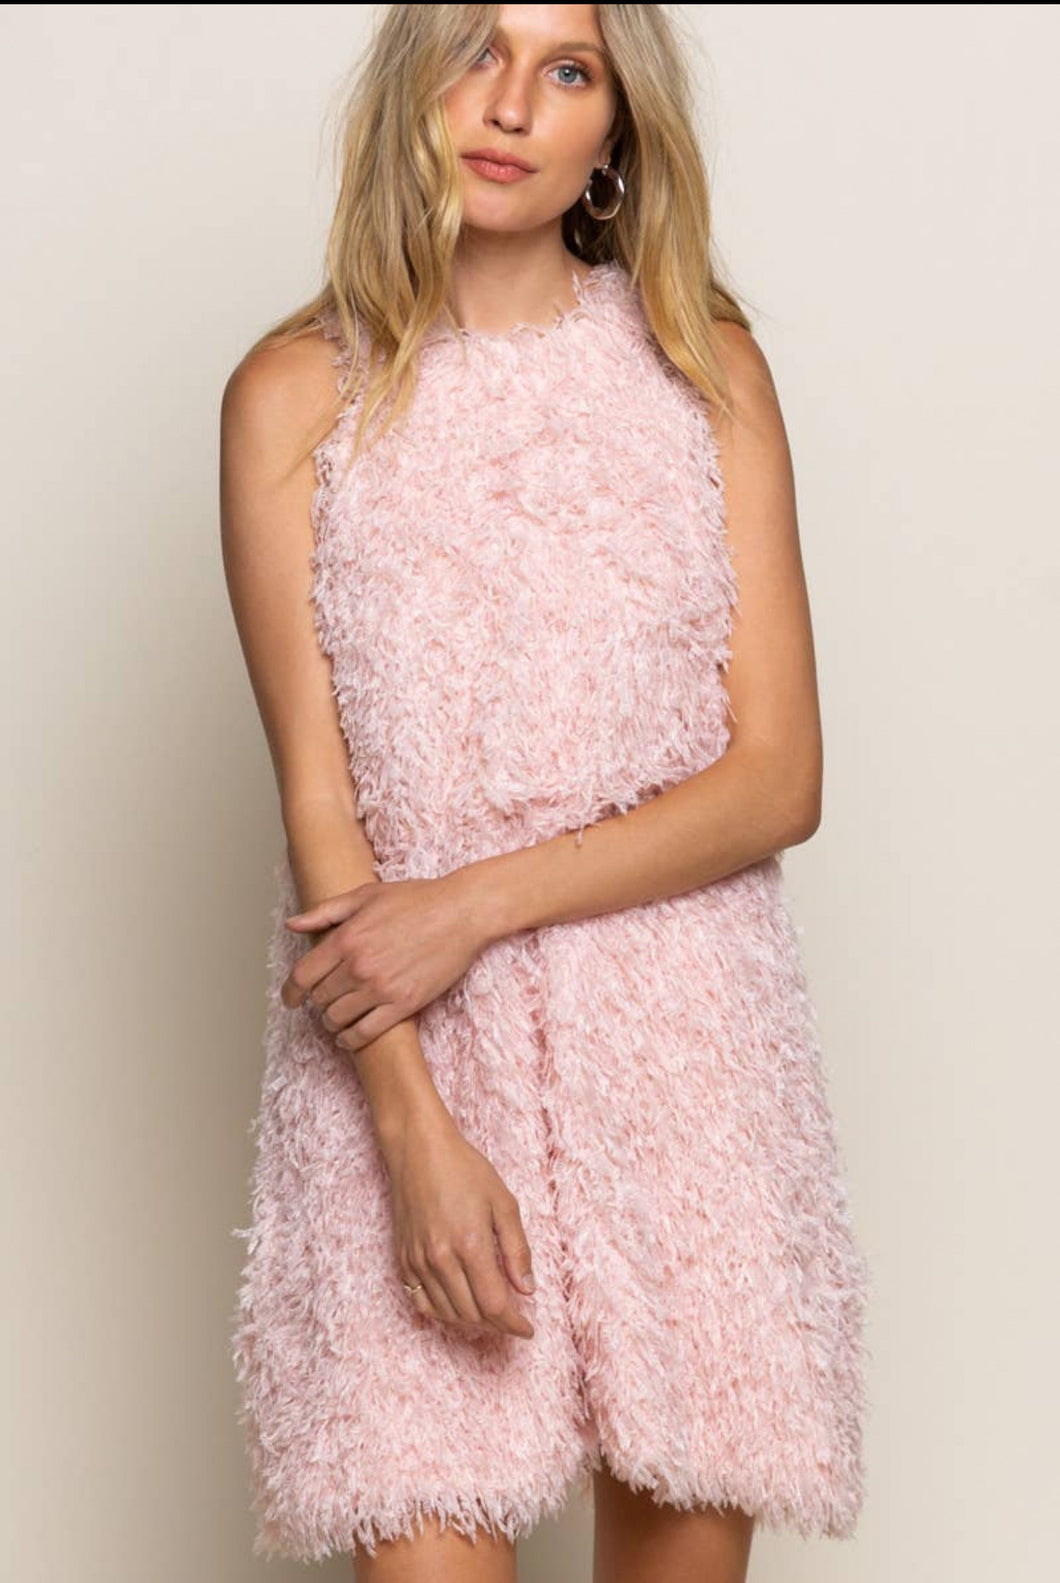 The Carrie B Dress